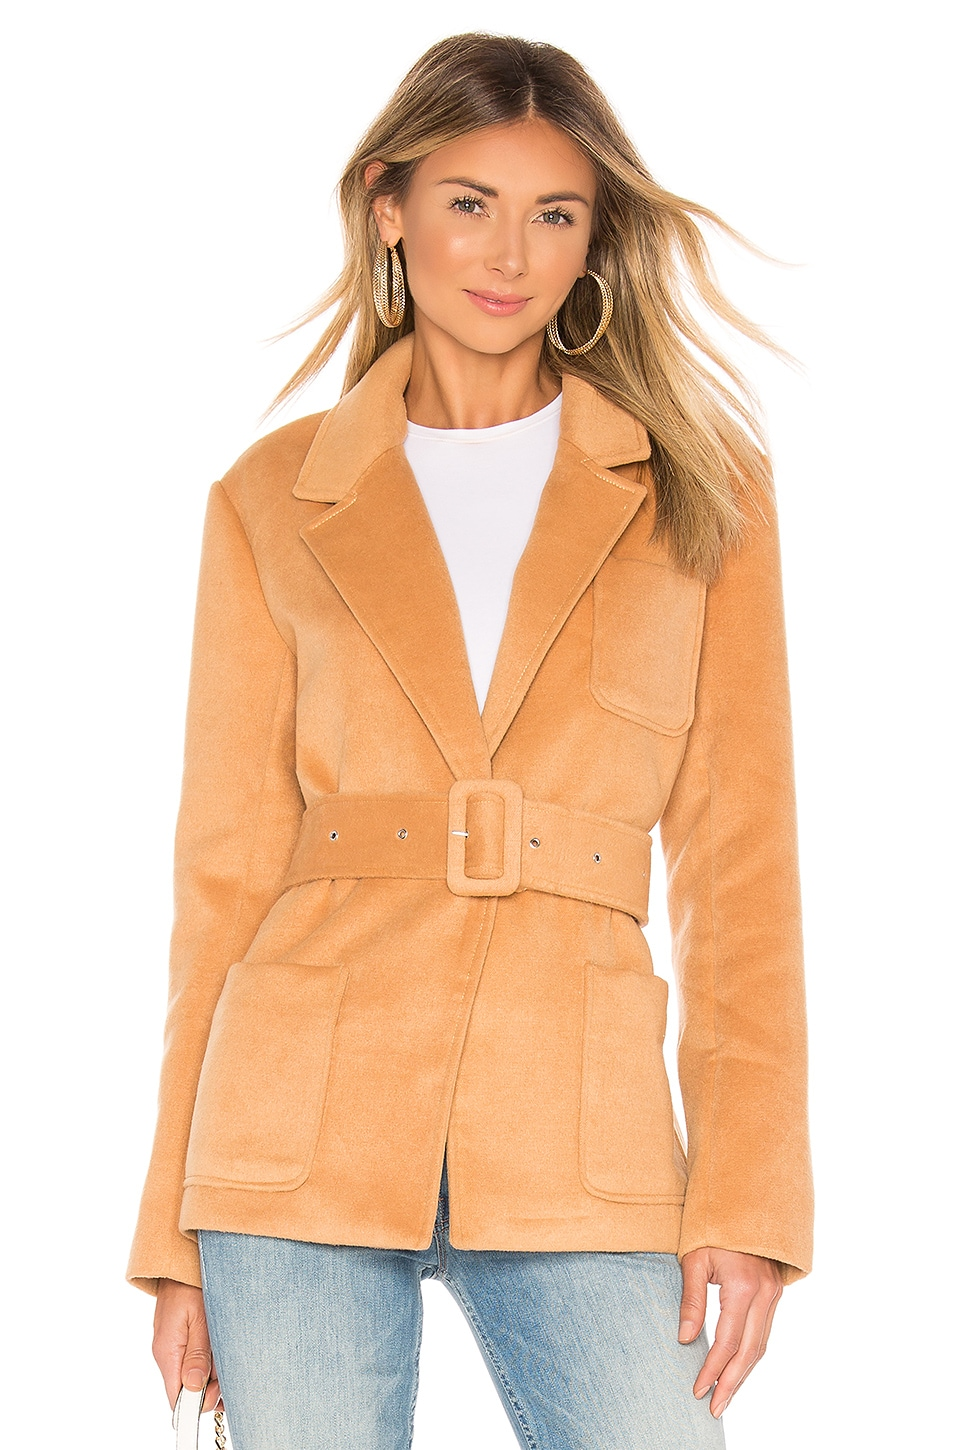 L'ACADEMIE The Susan Jacket in Orange